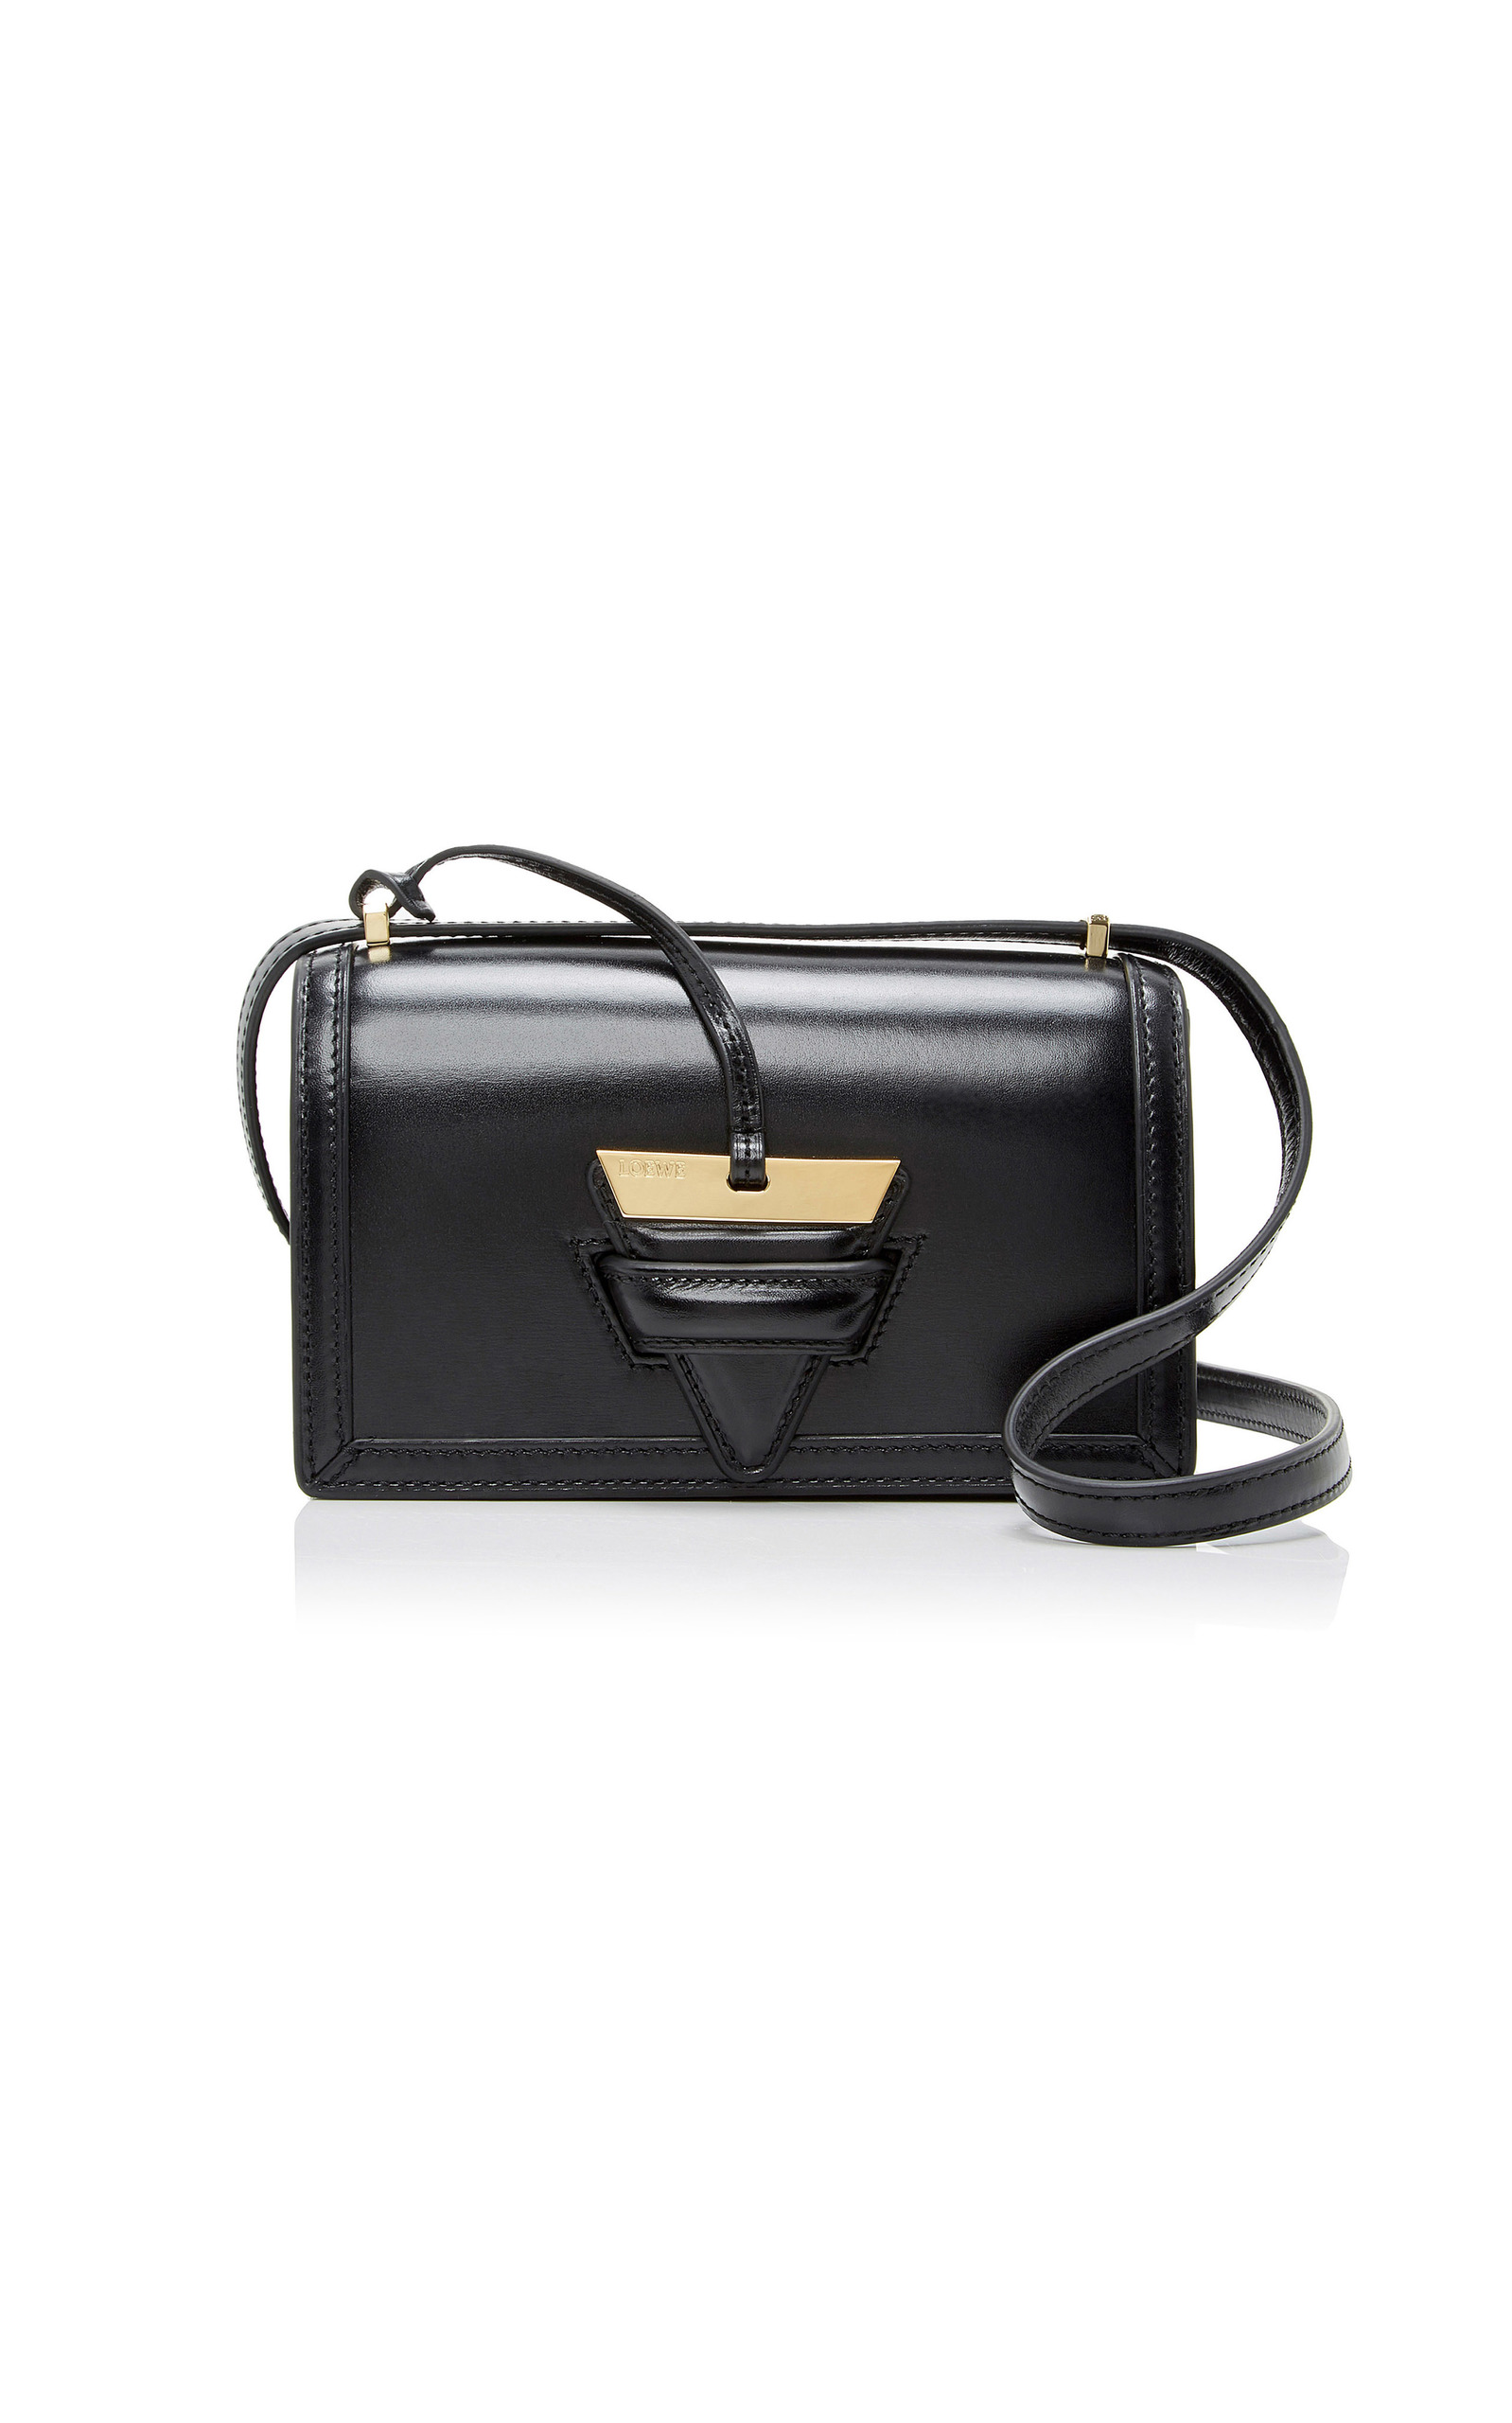 1dccb66f23 LoeweBarcelona Small Bag. CLOSE. Loading